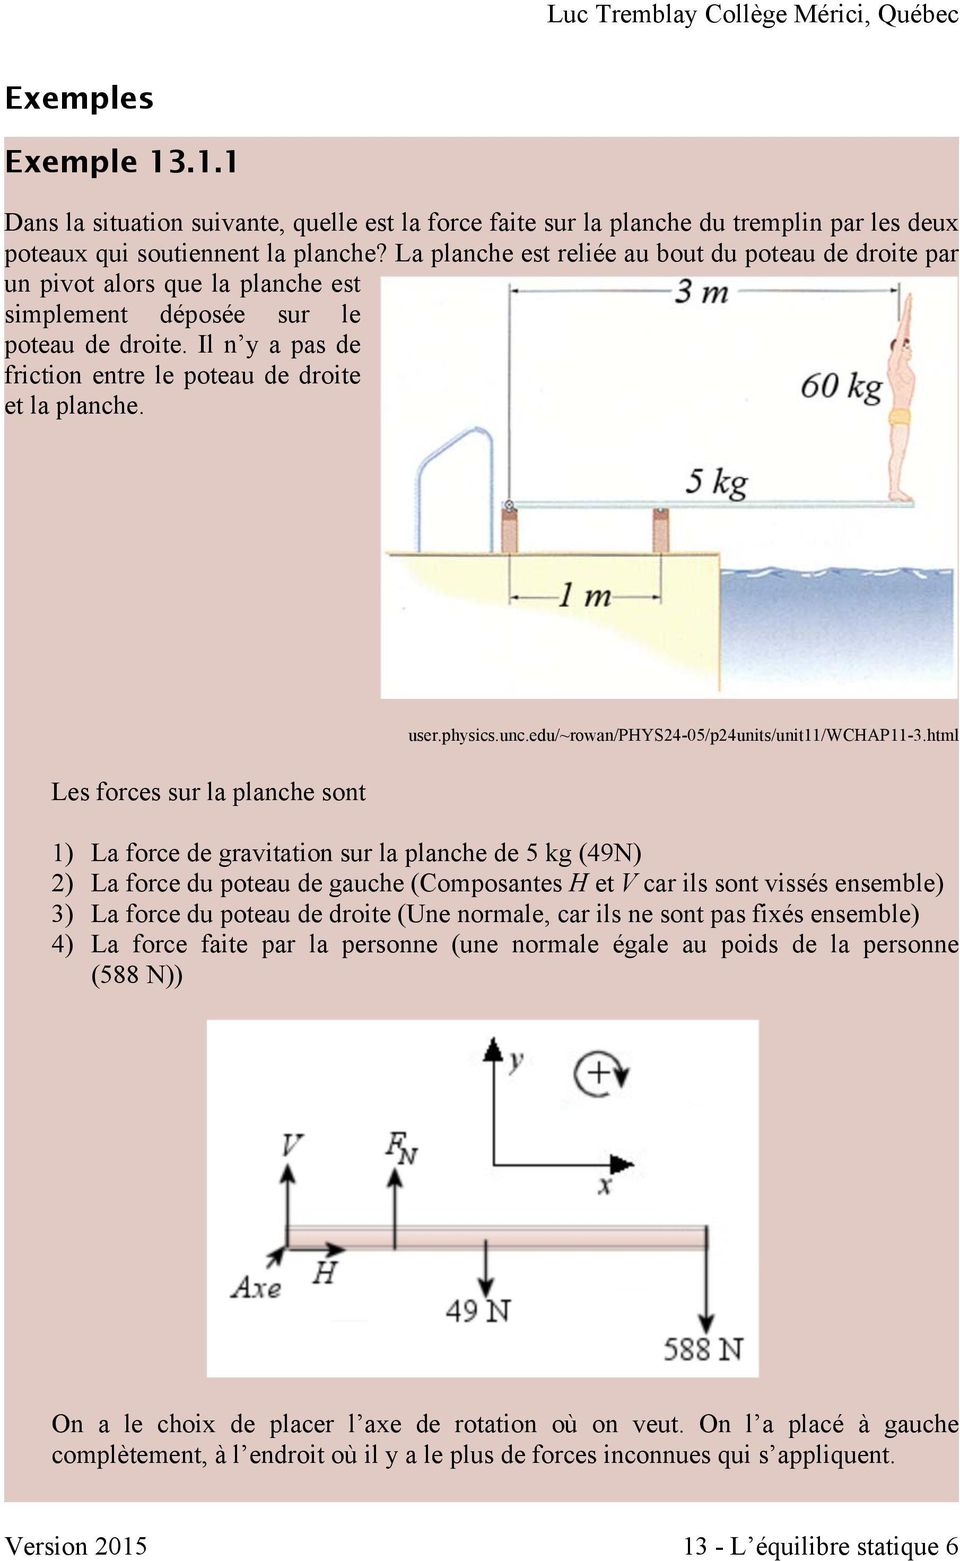 Les forces sur la planche sont user.physics.unc.edu/~rowan/phys24-05/p24units/unit11/wchap11-3.